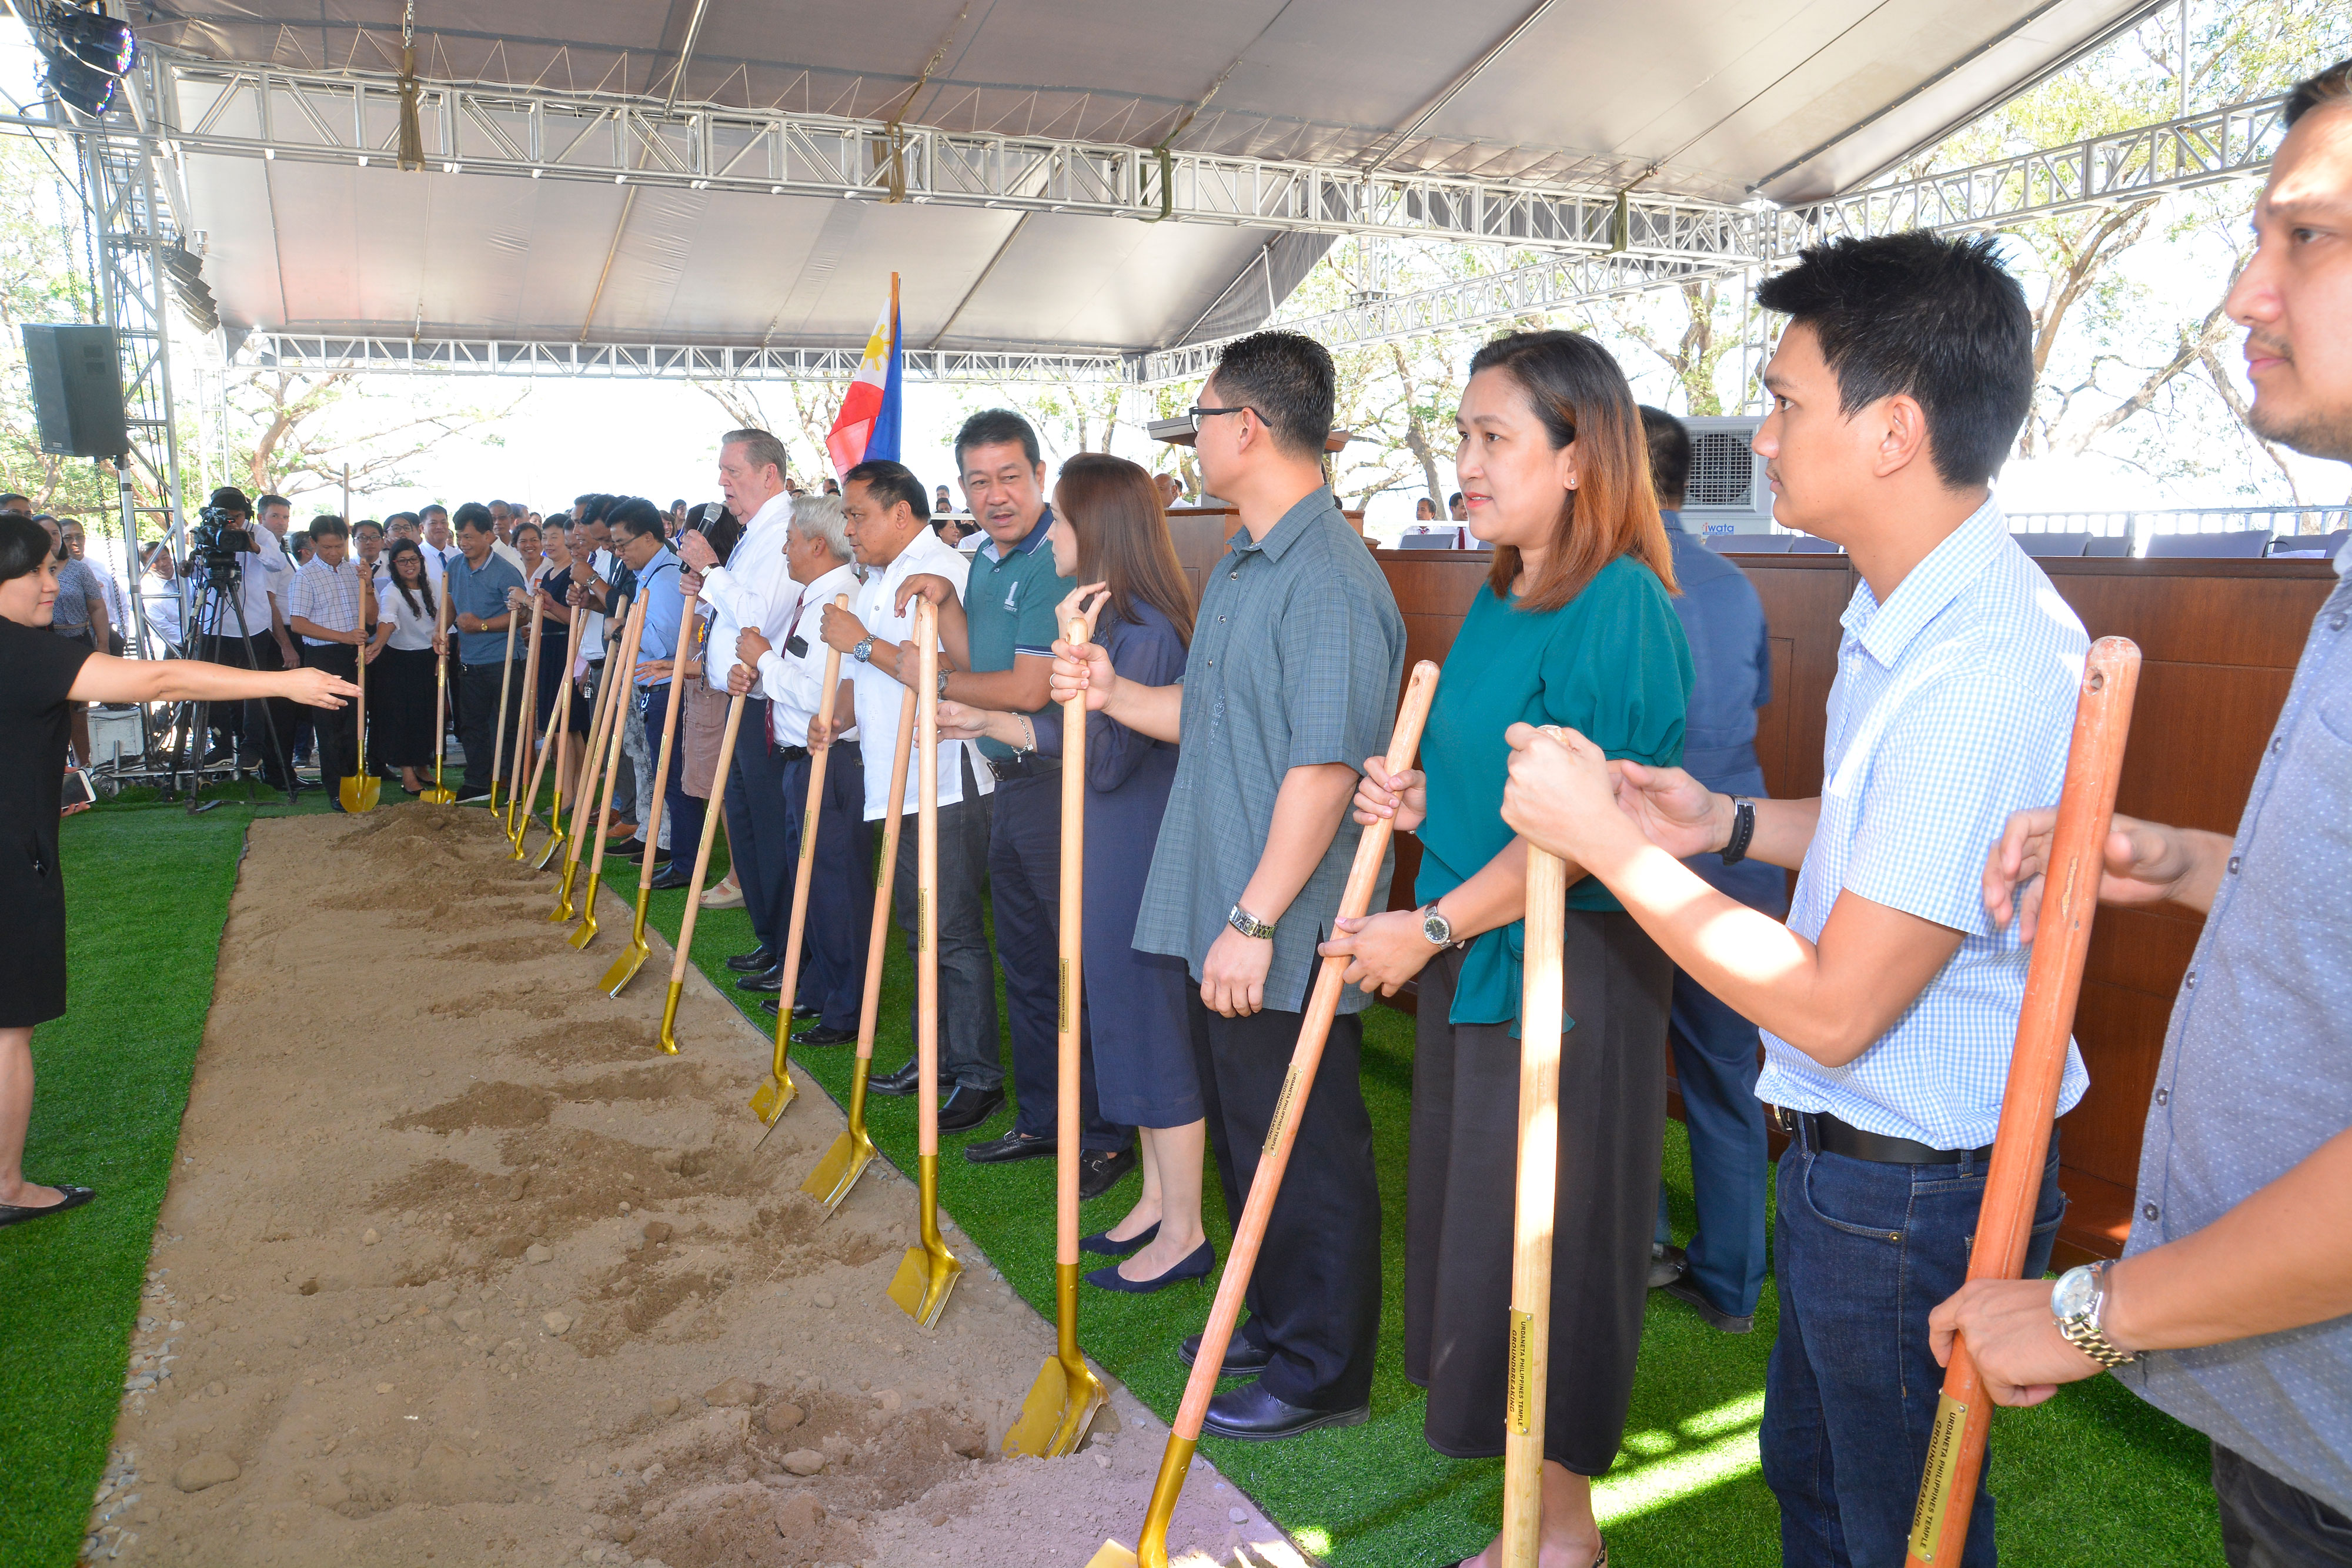 Holding a shovel in the center of the line, Elder Jeffrey R. Holland of the Quorum of the Twelve Apostles addresses community leaders and Church membersa in Urdaneta, Pangasinan, Philippines, on Wednesday Jan. 16, 2019. He broke ground for the new temple, the Church's third in the Philippines.